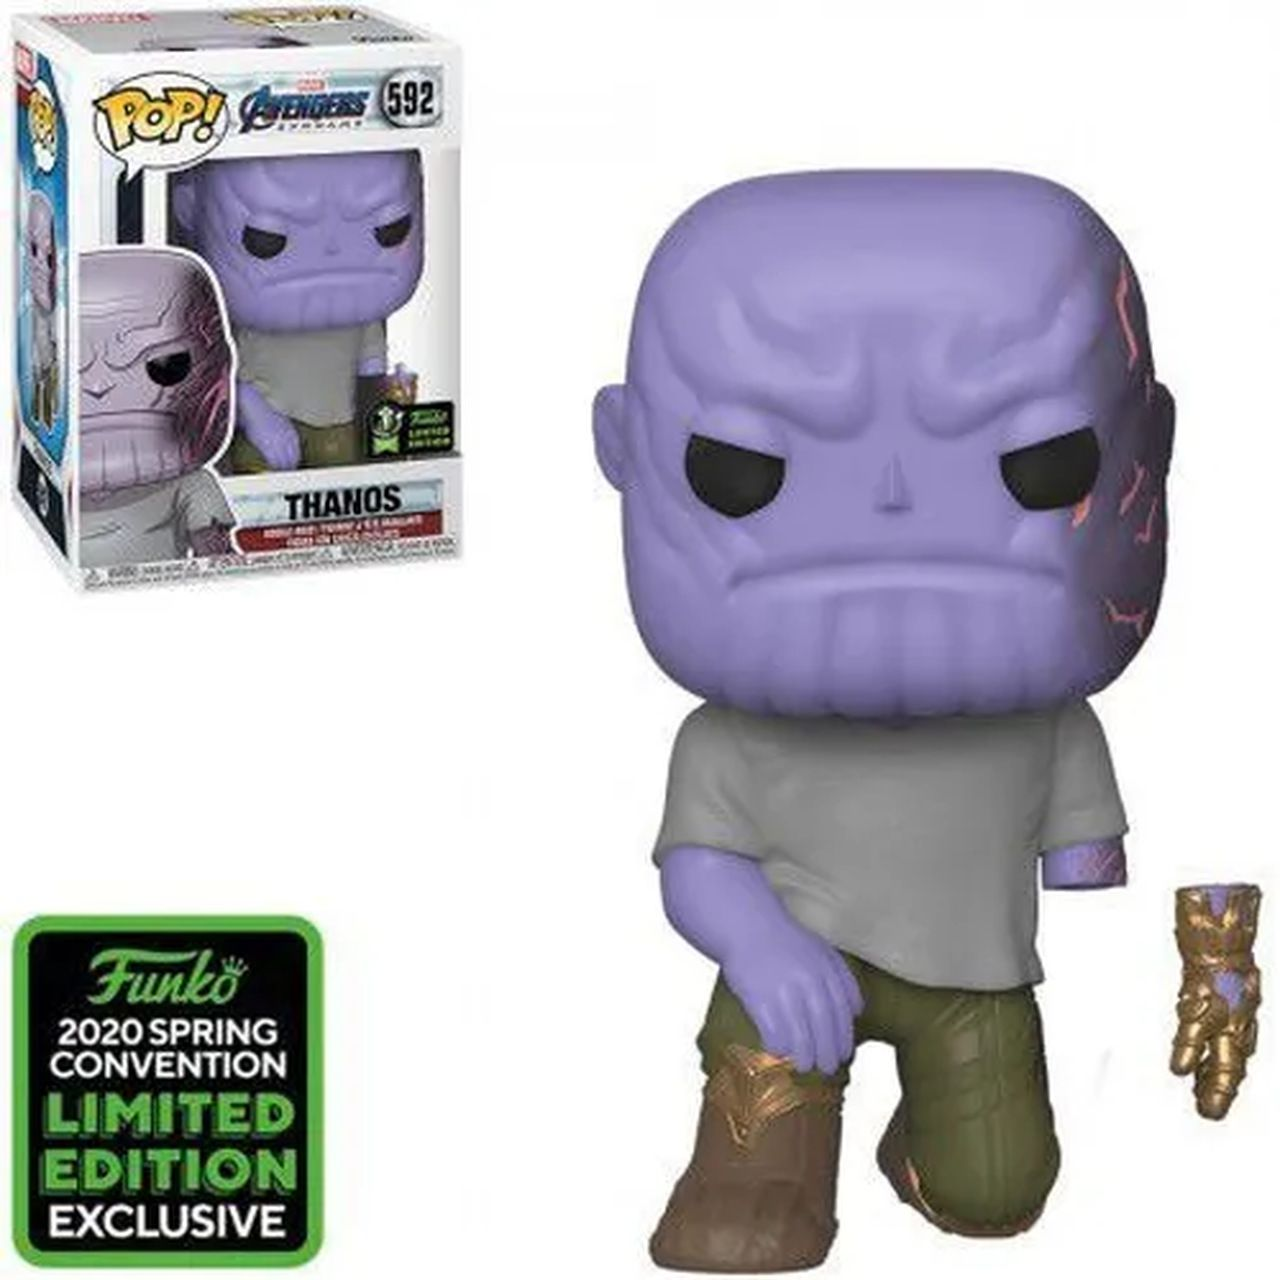 Pop! Thanos: Vingadores Ultimato (Avengers End Game) Exclusivo #592 - Funko